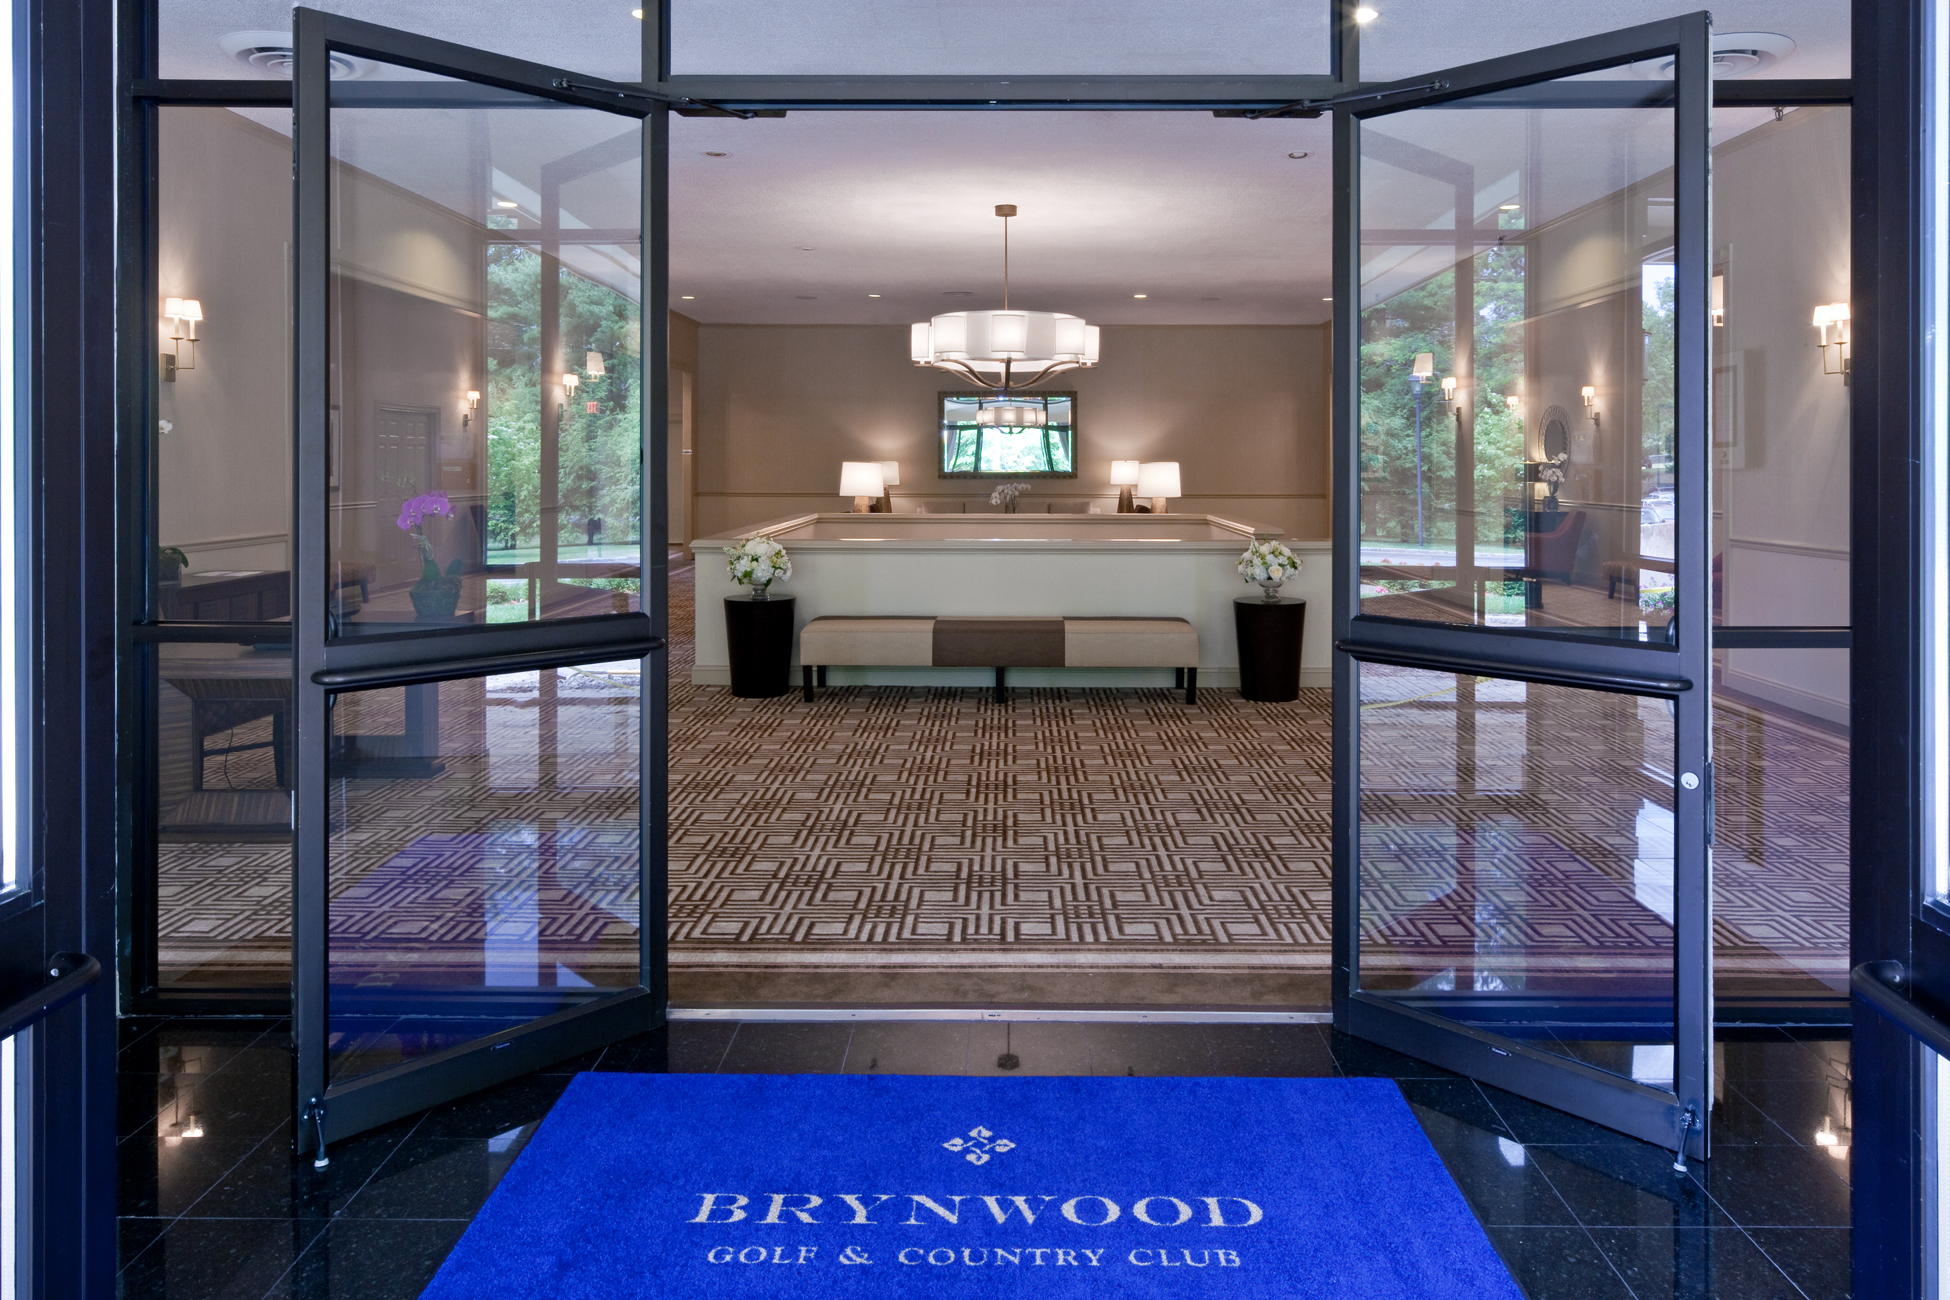 Brynwood Golf and Country Club  Naming, brand narrative and concept, copywriting, logo design, exhibit design and writing, and brand applications